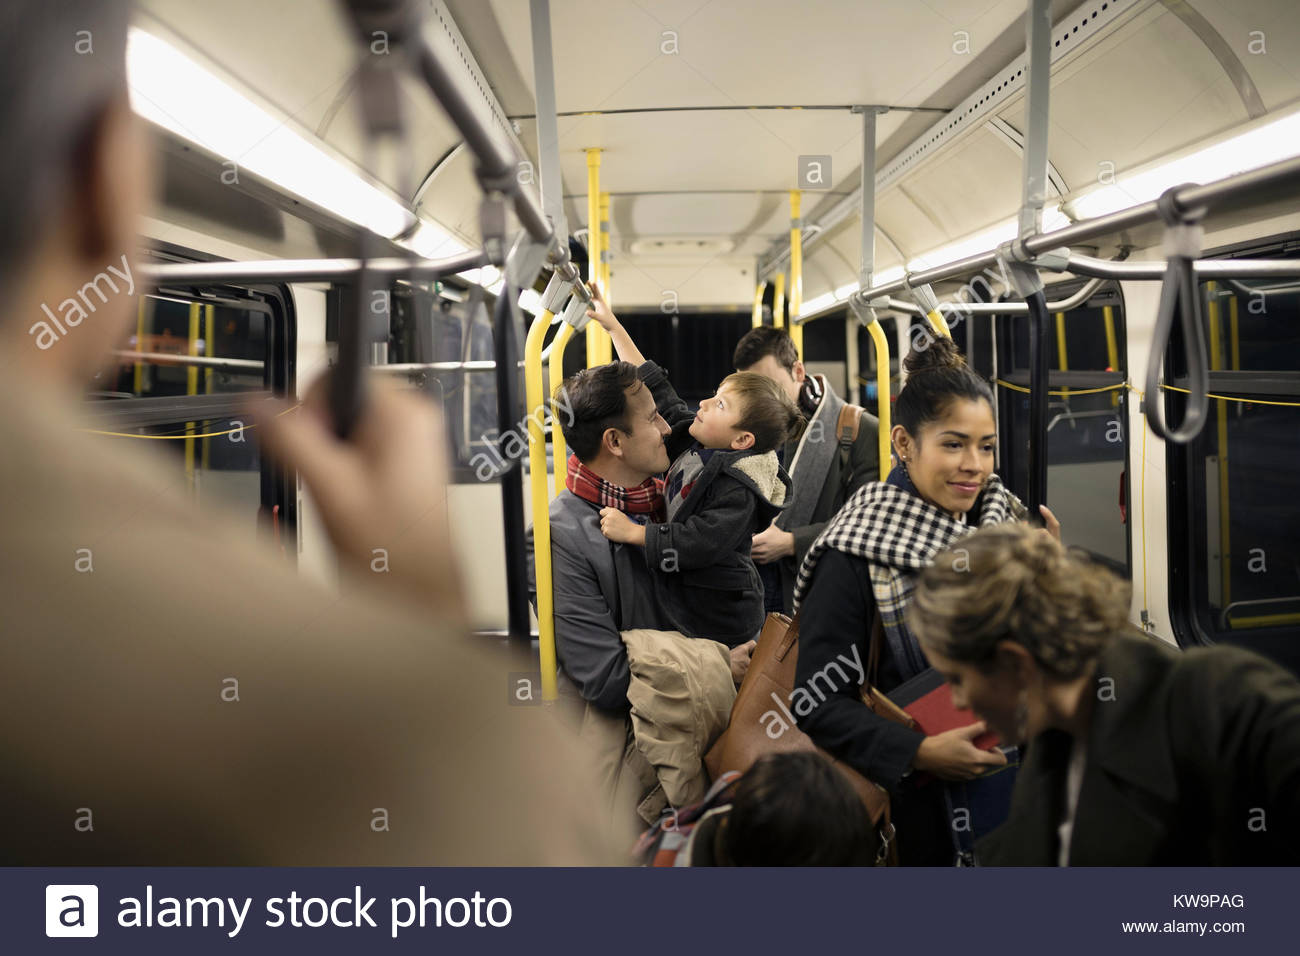 Commuters riding bus - Stock Image